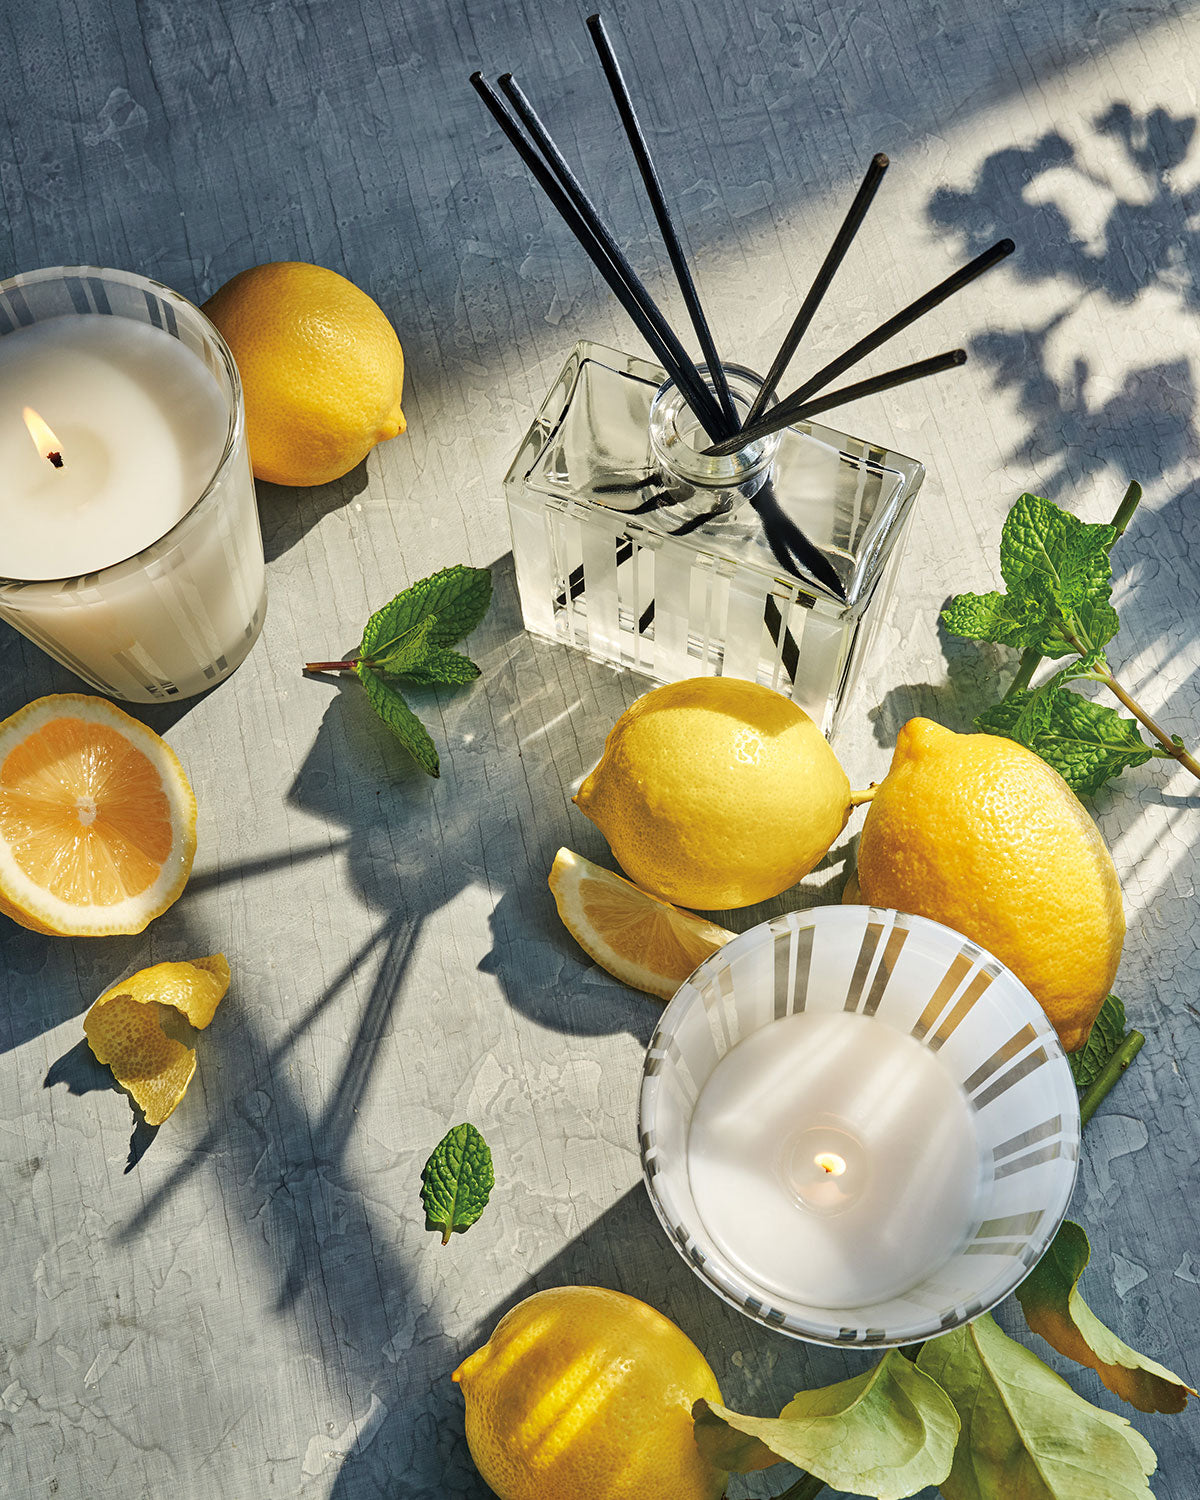 NEST Fragrances Amalfi Lemon & Mint Candles and Reed Diffuser